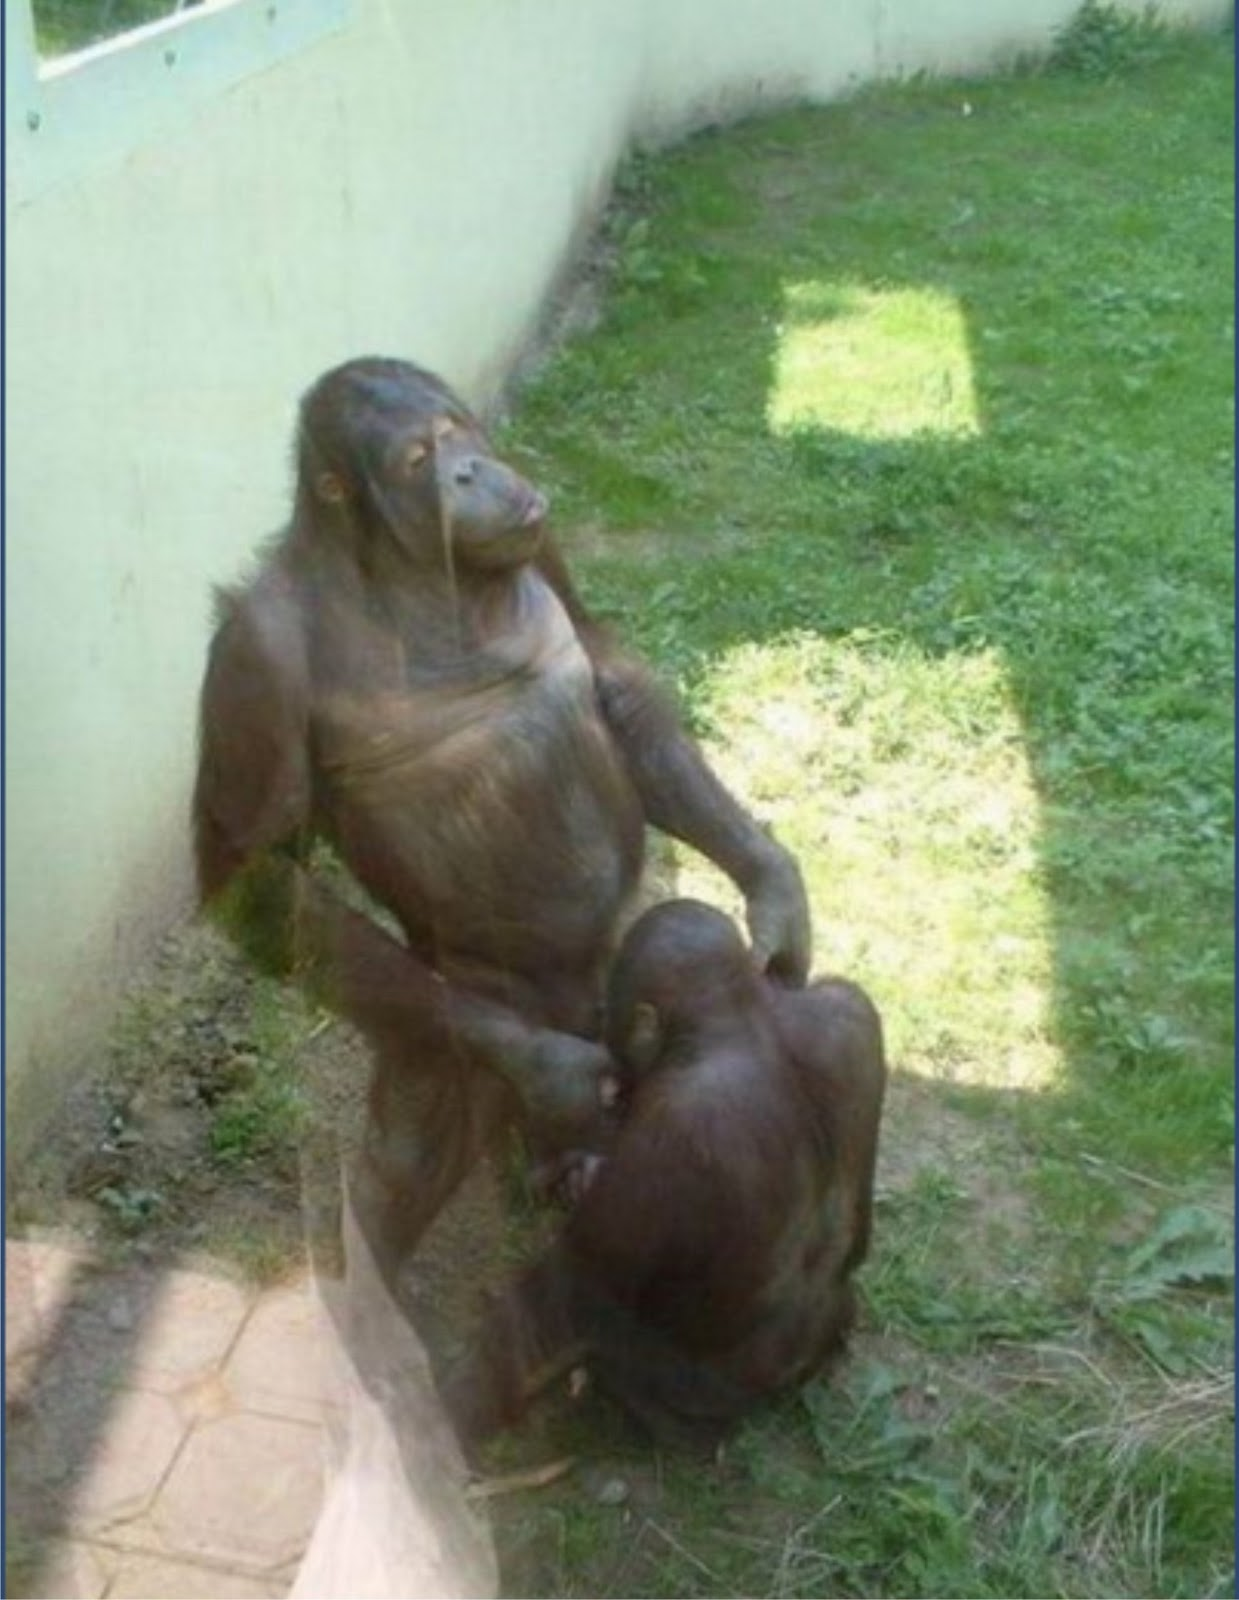 Chimpanzee monkey fuck girl sexy smut photo